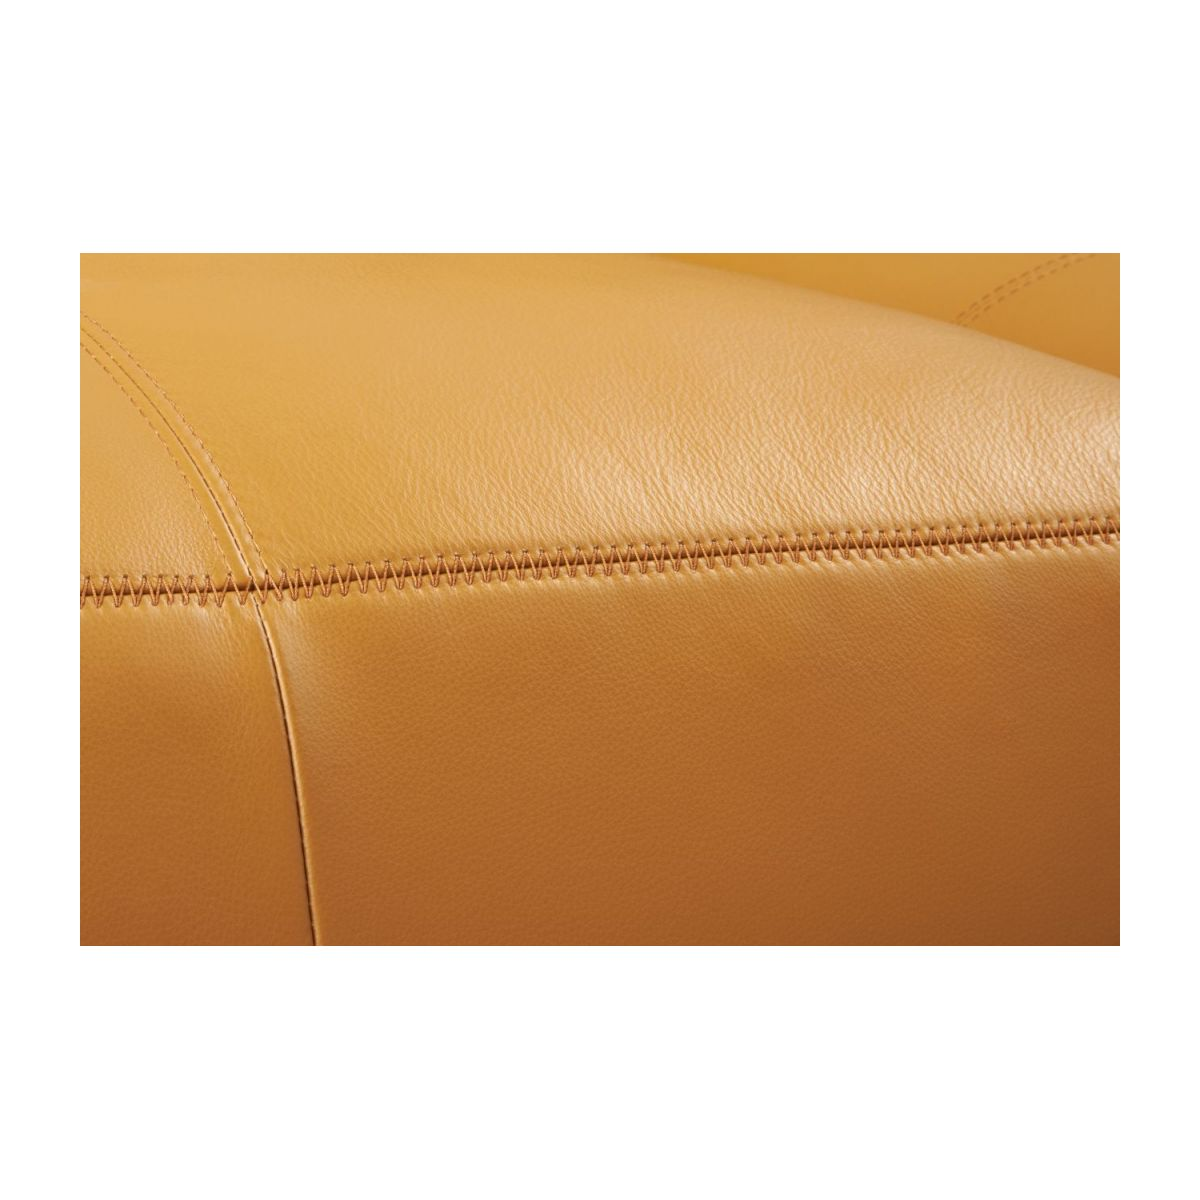 2 seater sofa in Savoy semi-aniline leather, cognac n°12